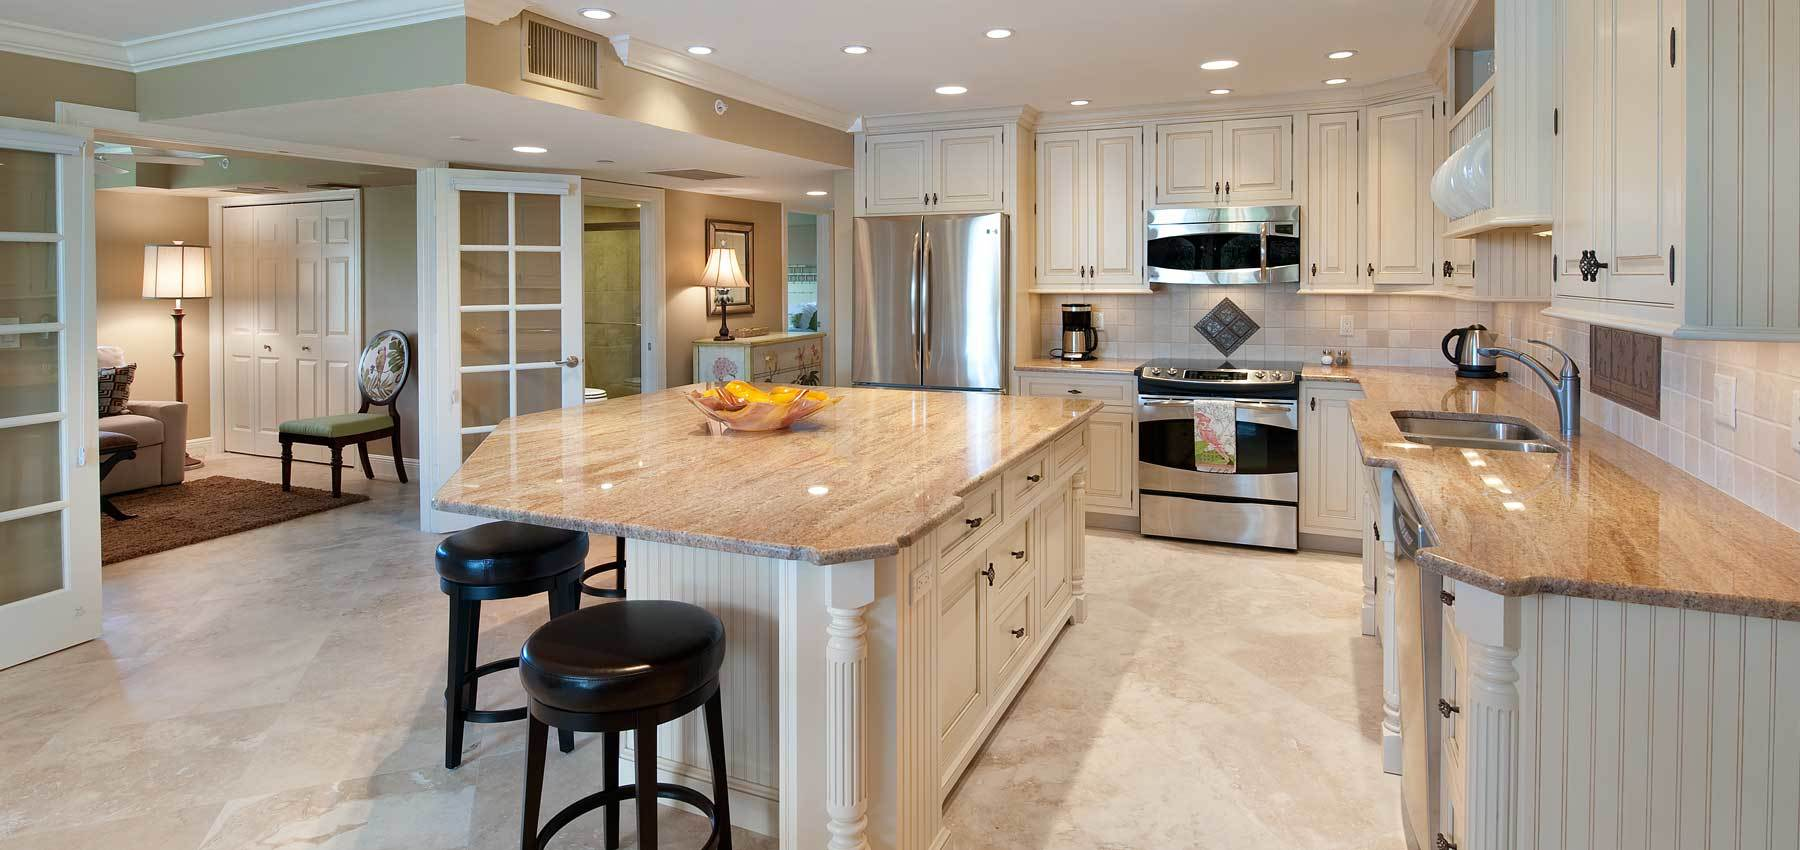 Kitchen remodeling kgt remodeling for Kitchen renovation ideas images